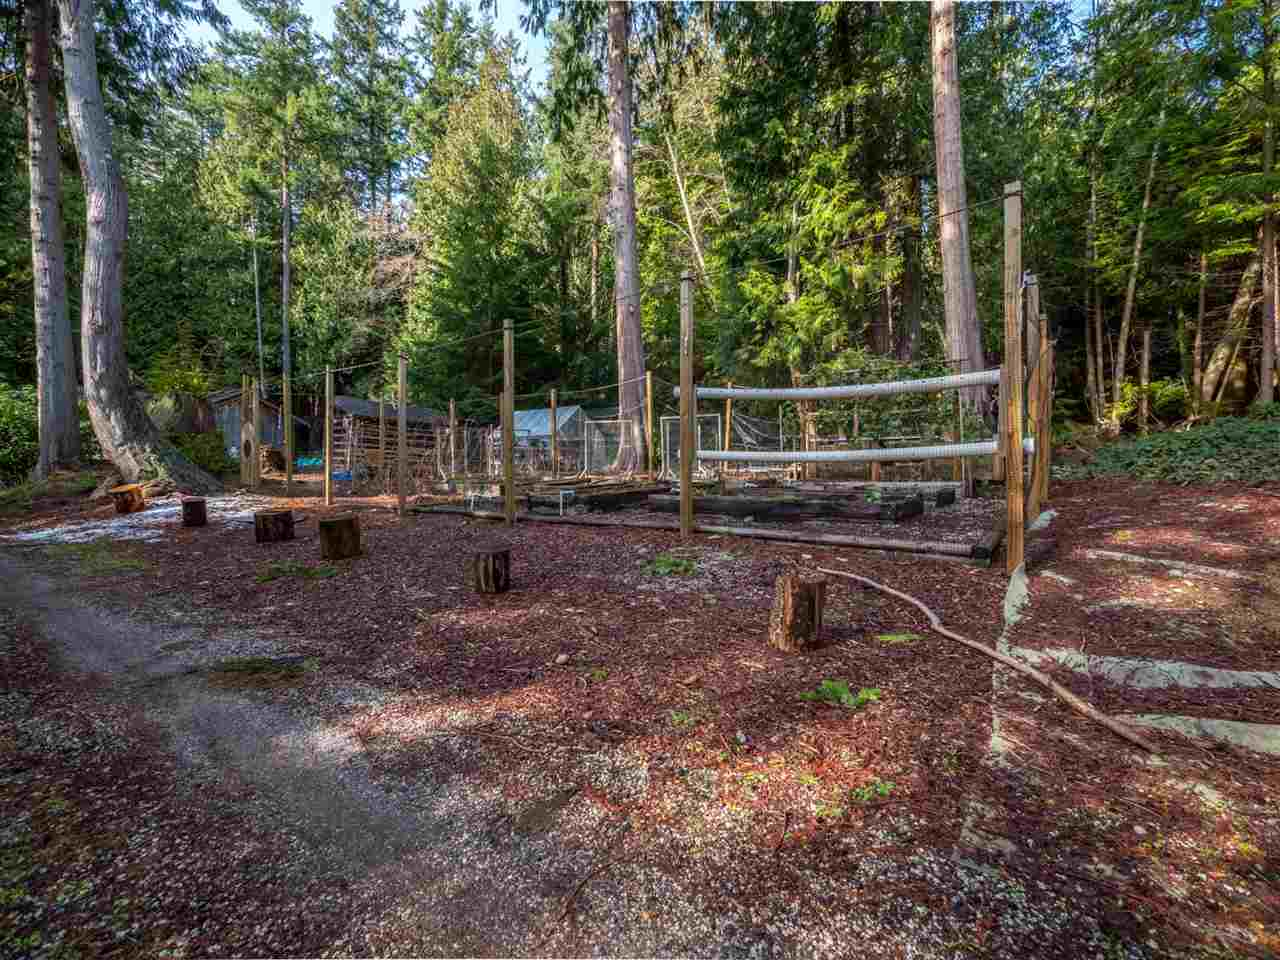 Photo 16: Photos: 1421 MARGARET Road: Roberts Creek House for sale (Sunshine Coast)  : MLS® # R2243186